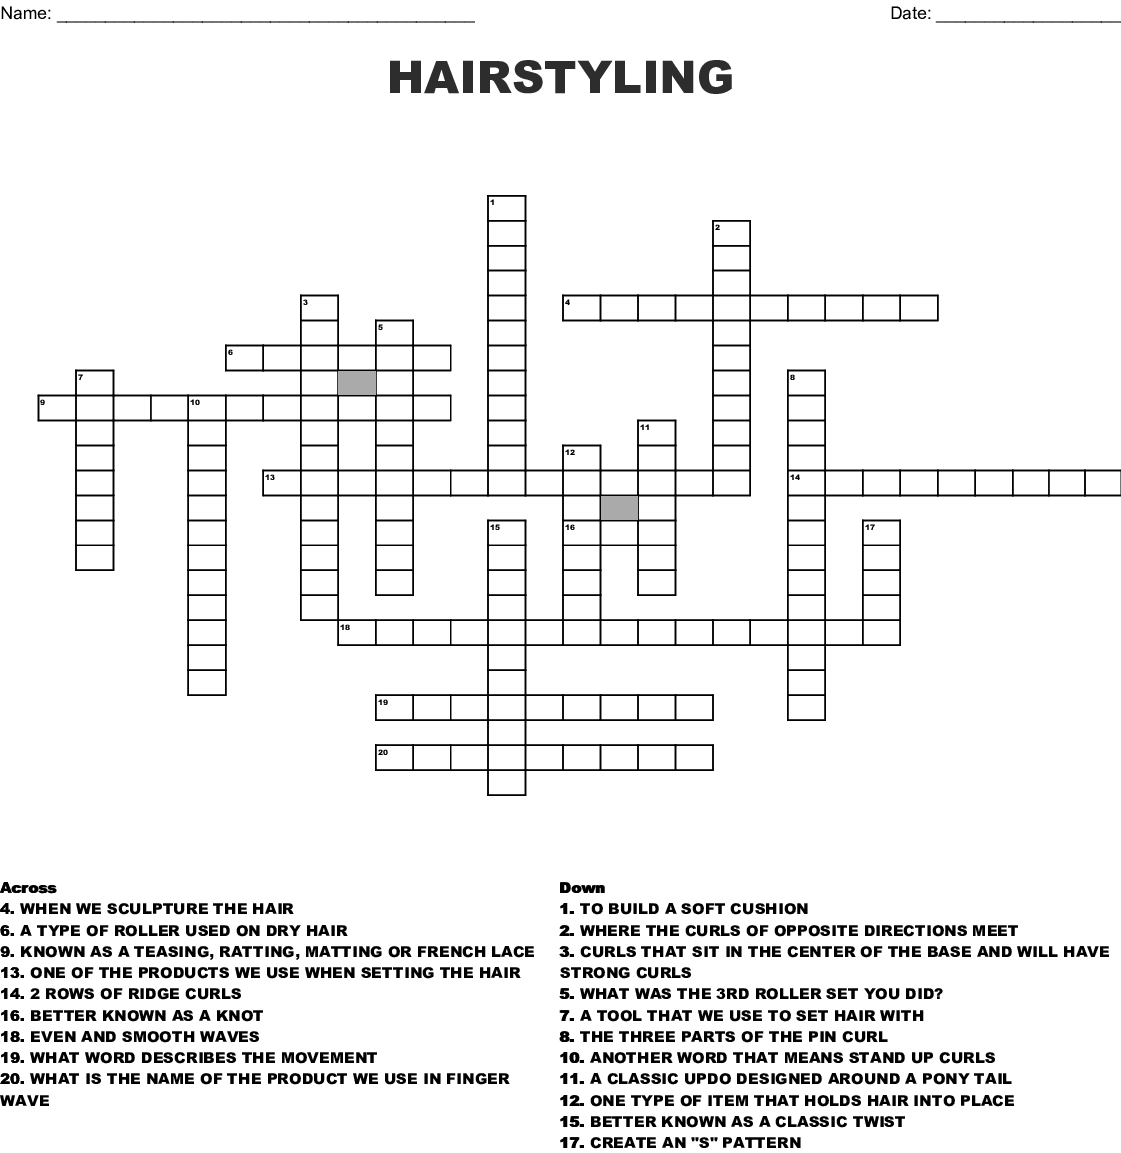 HAIRSTYLING Crossword